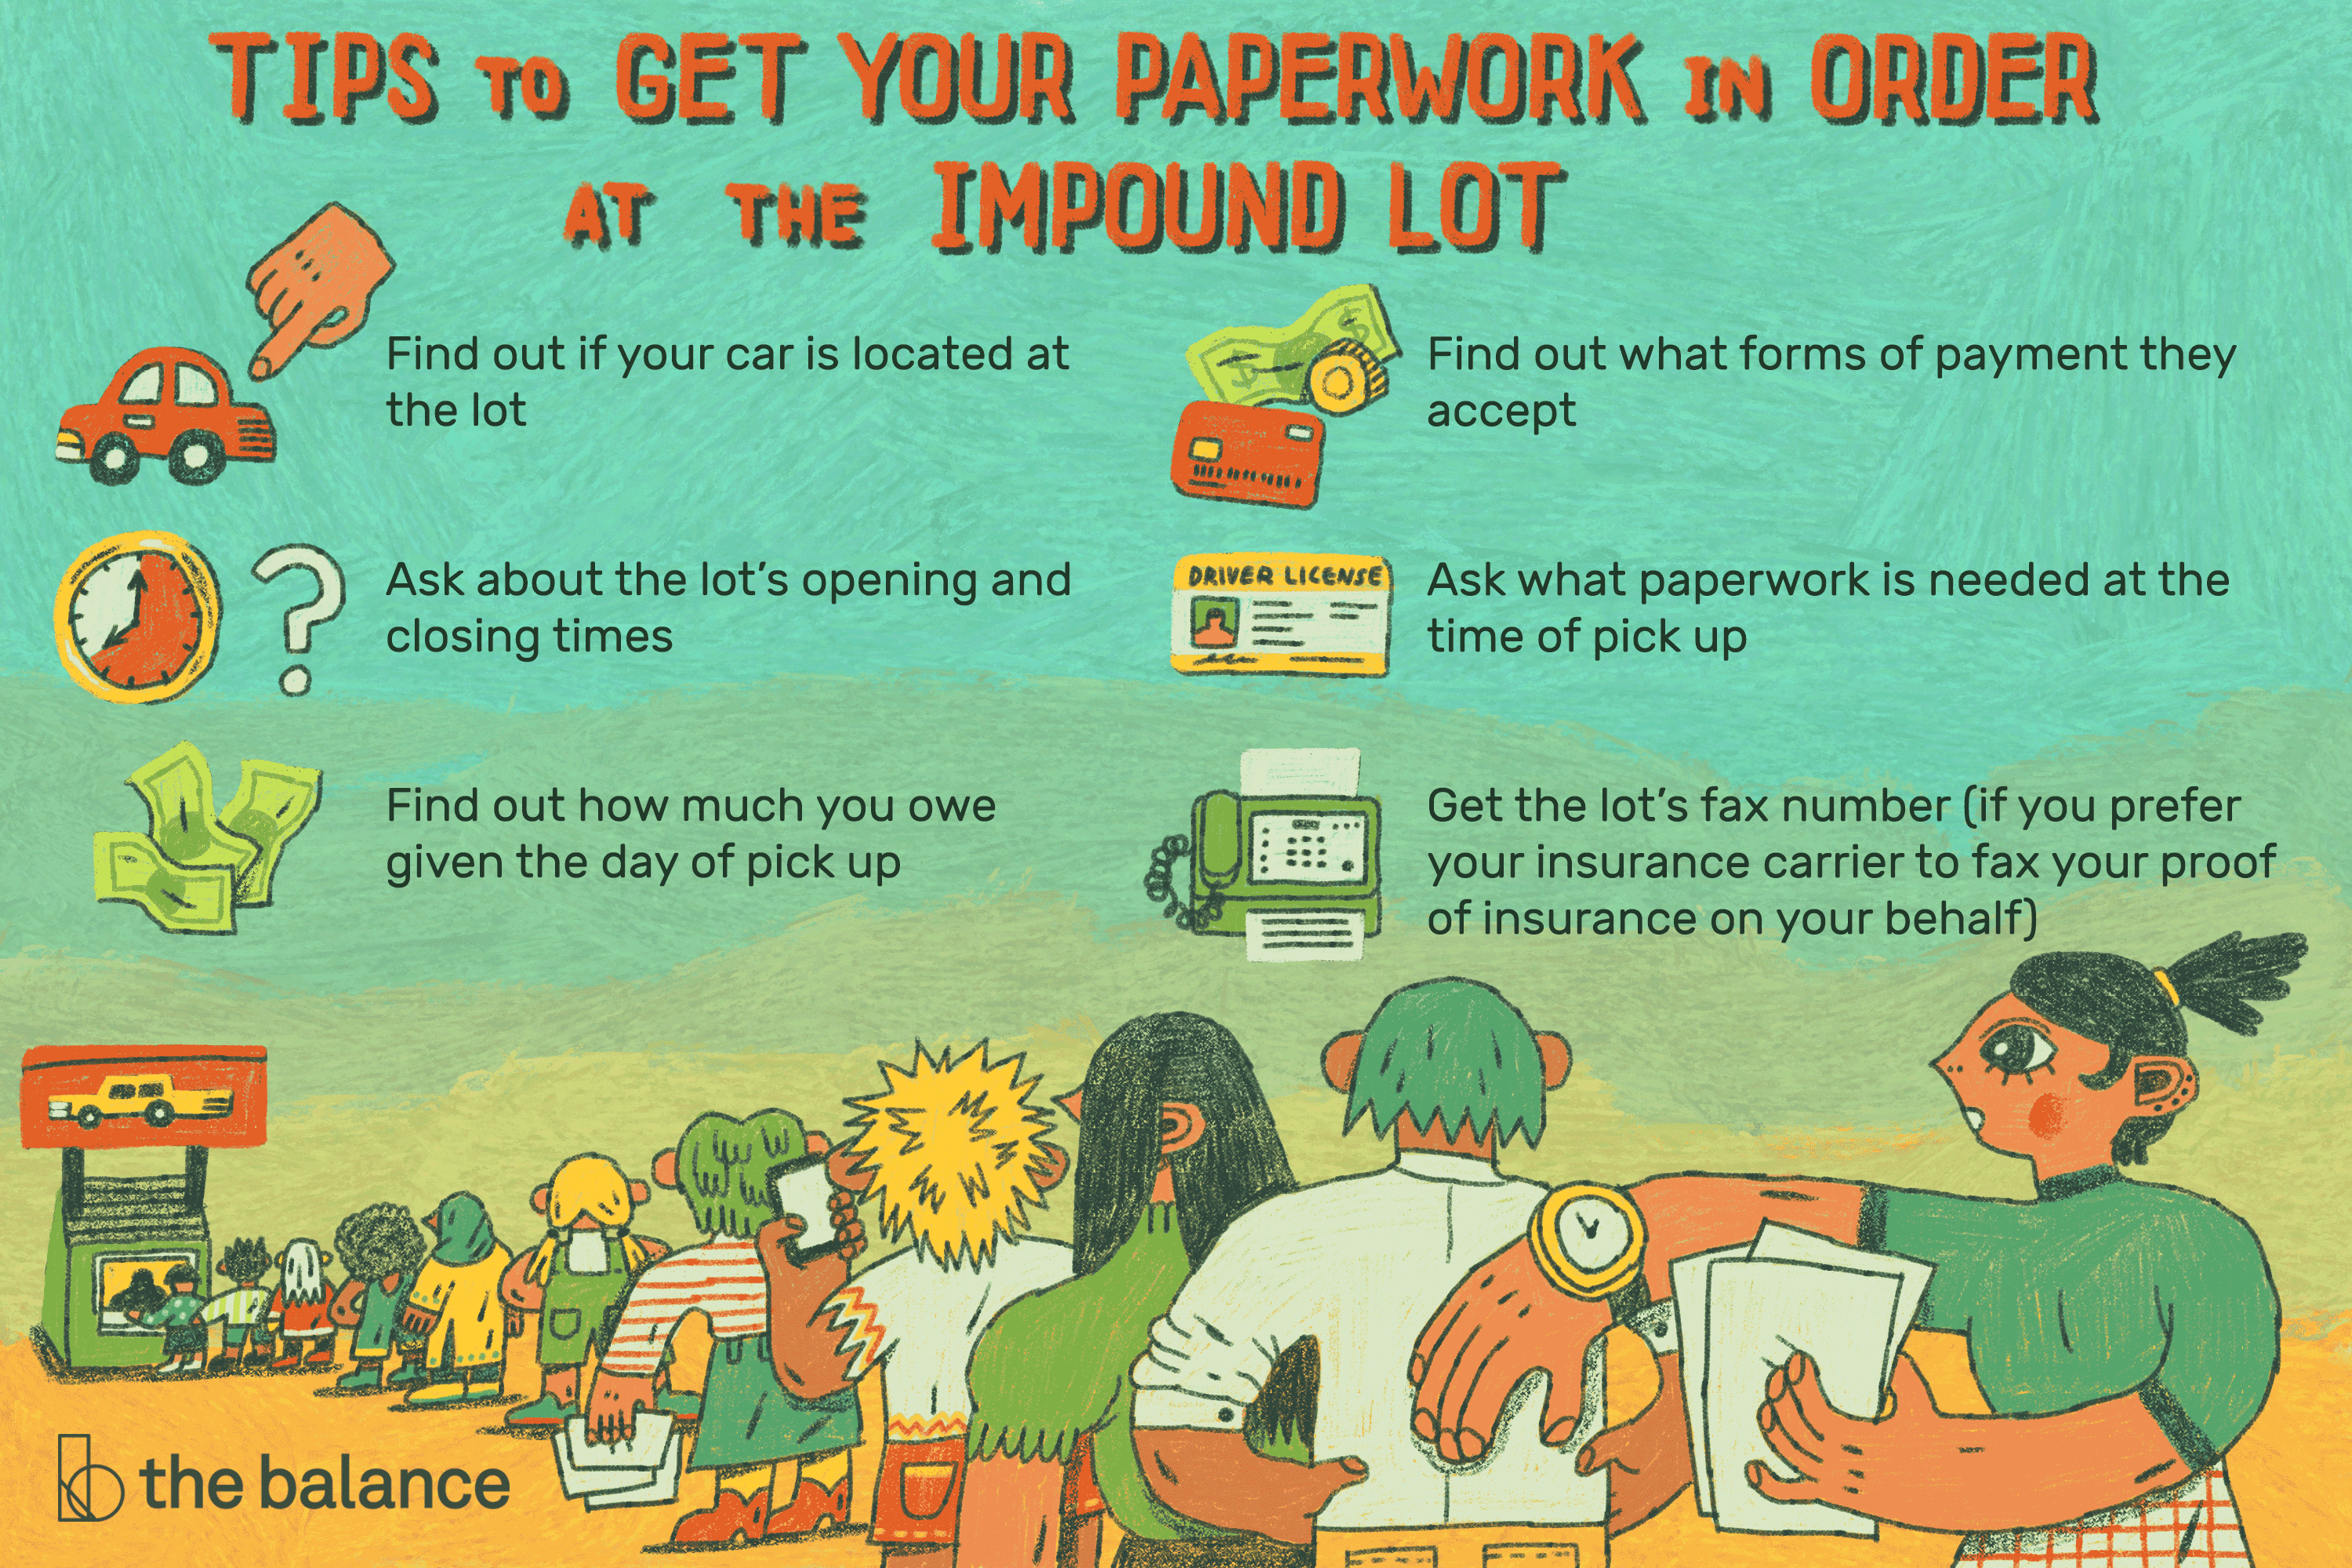 This illustration shows how to get your paperwork in order at the impound lot including finding out if you car is at the lot, asking about the lot's opening and closing times, finding out how much you owe on the day of pick up, finding out what forms of payment they accept, asking what paperwork is needed at the time of pick up, and getting the lot's fax number if you prefer your insurance carrier to fax your proof of insurance on your behalf.